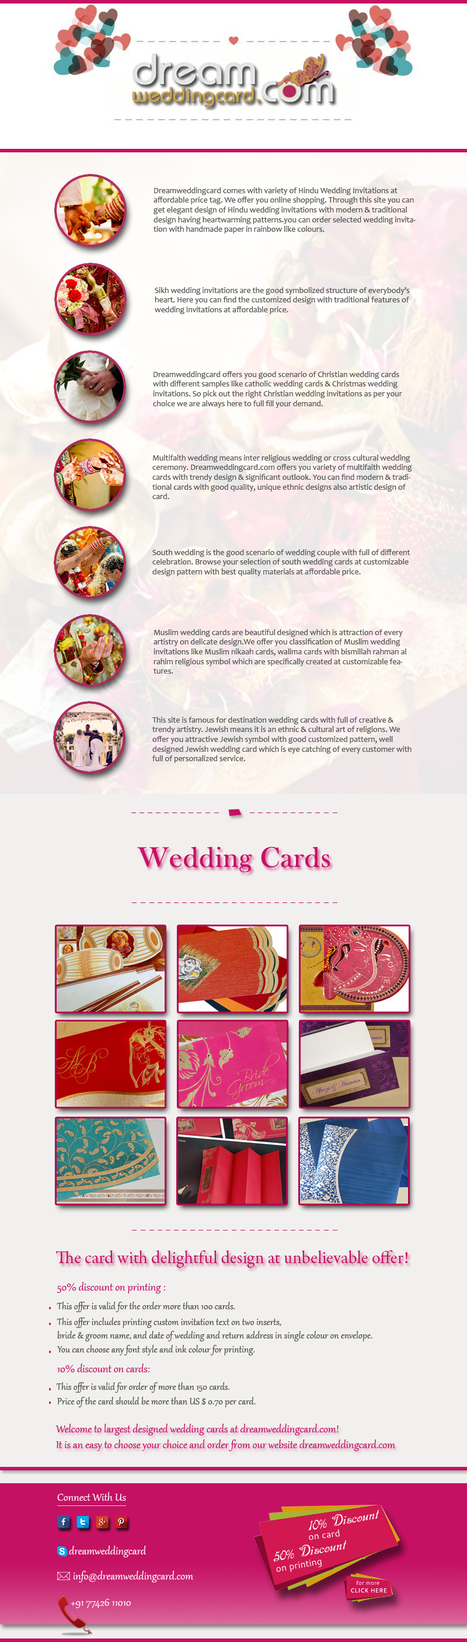 Dream Wedding Card presents latest and unique collection of religious invitation cards | Designer Wedding Cards | Scoop.it